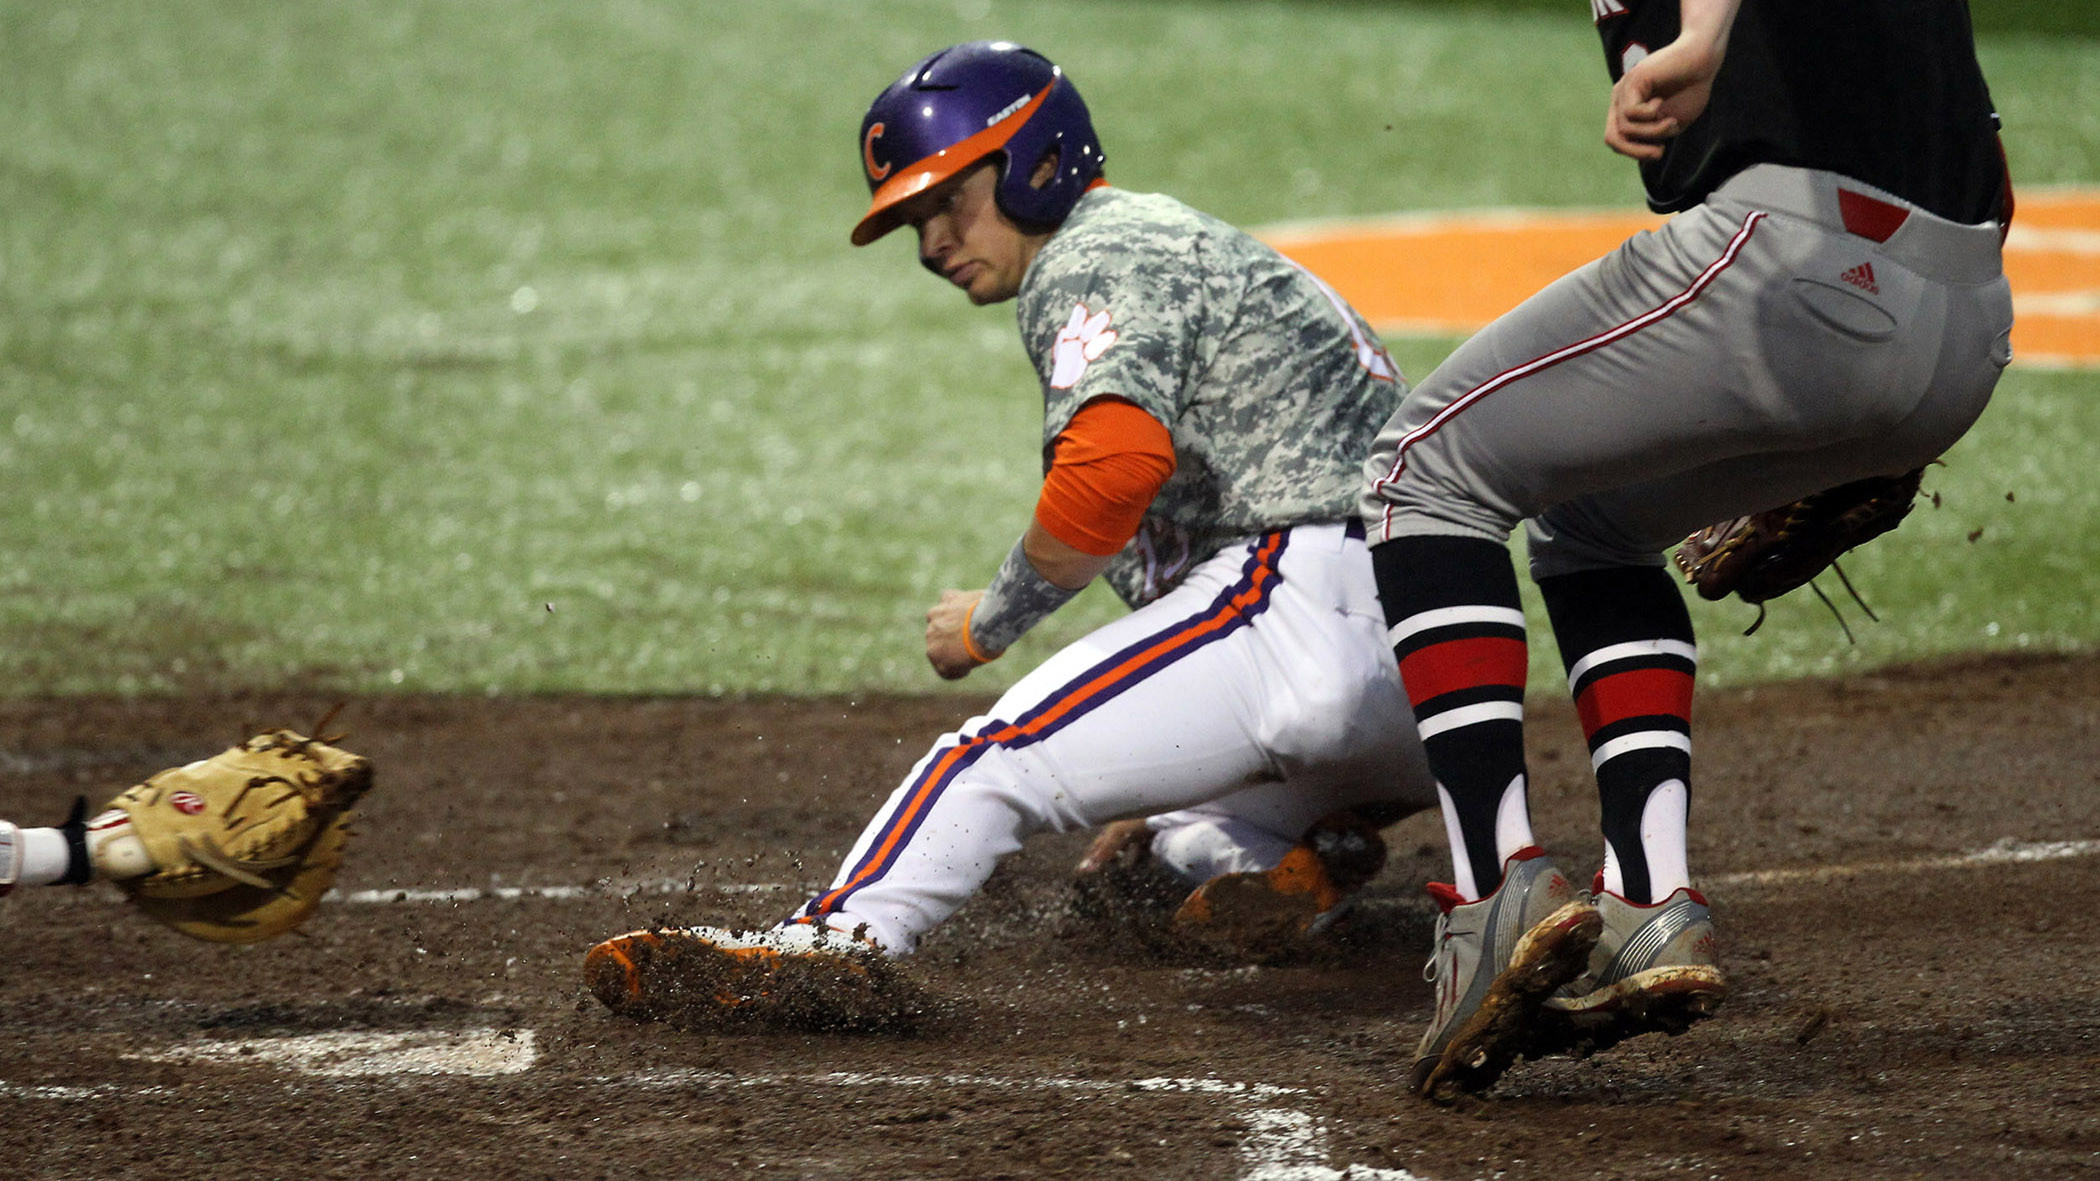 NC State Takes Series With 7-1 Win Over No. 14 Tigers on Monday